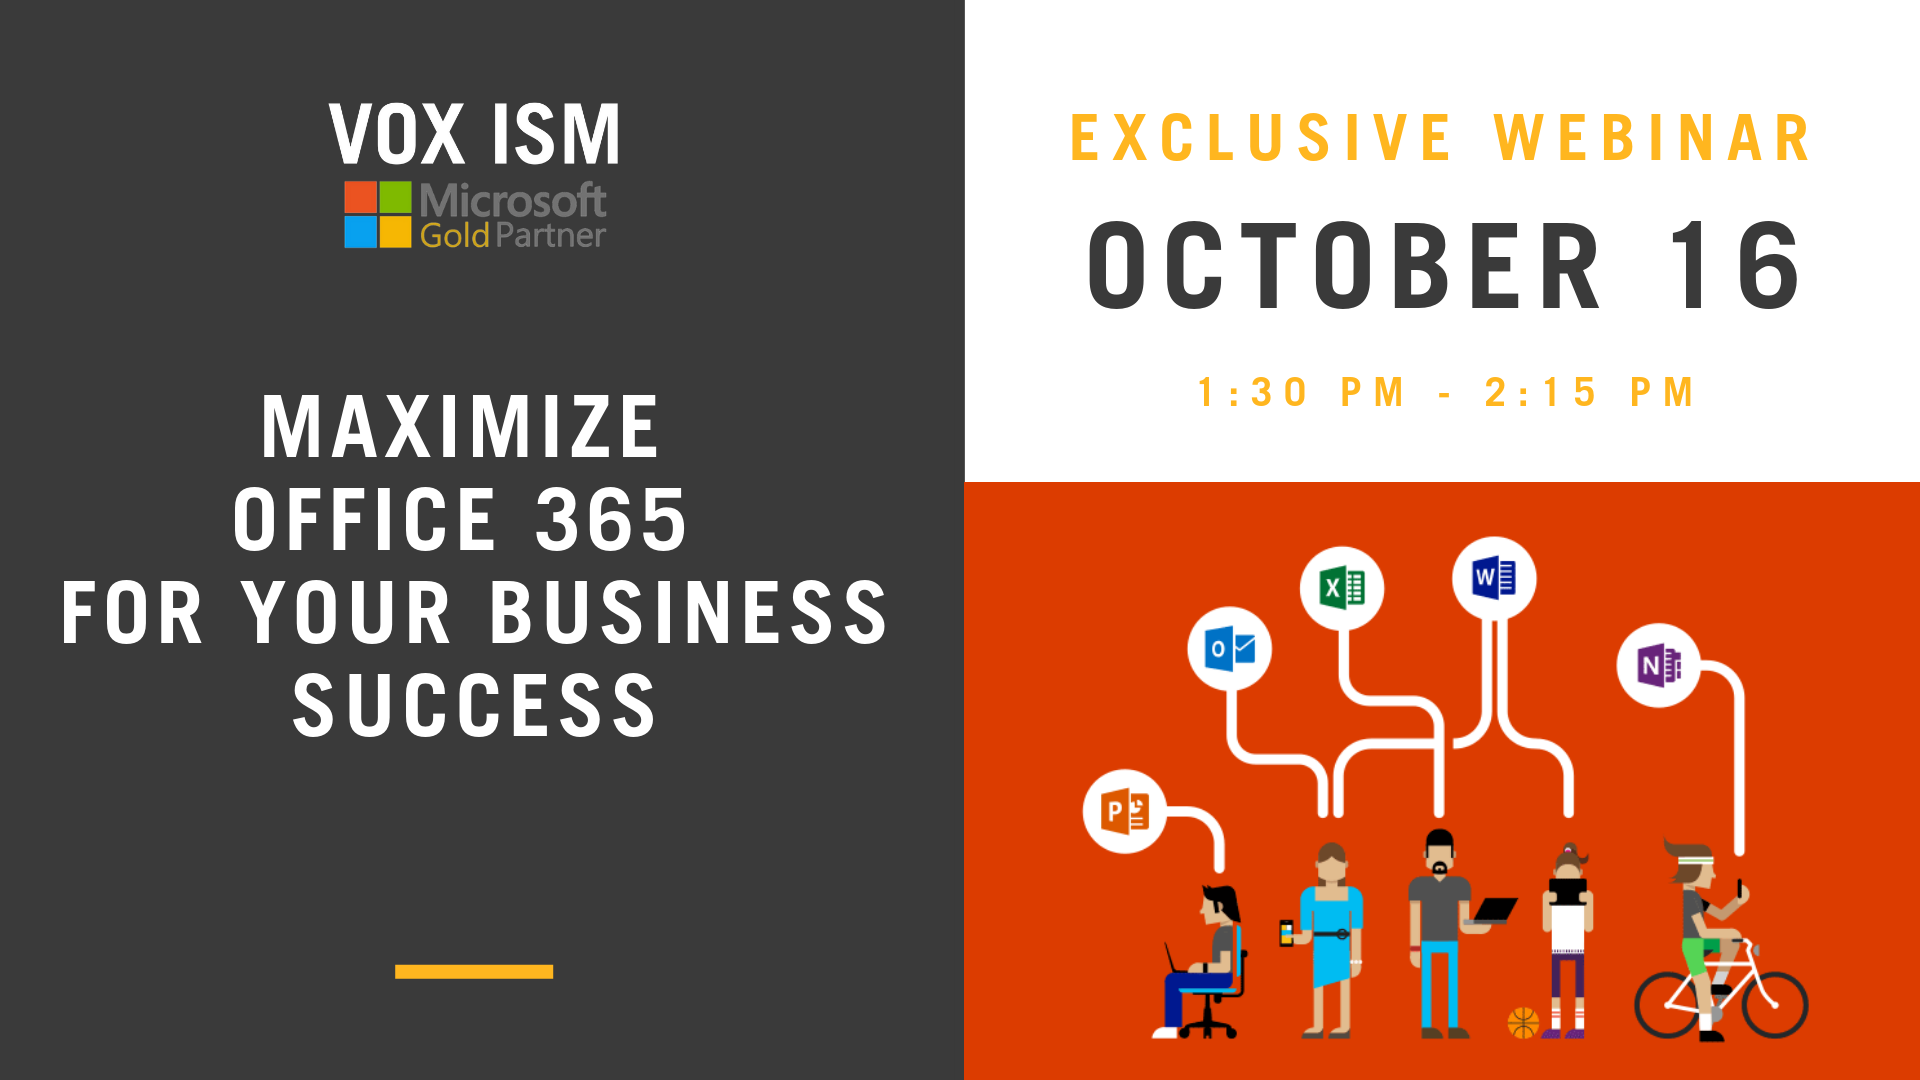 Maximize Office 365 for Your Business Success - October 16 - Webinar - VOX ISM